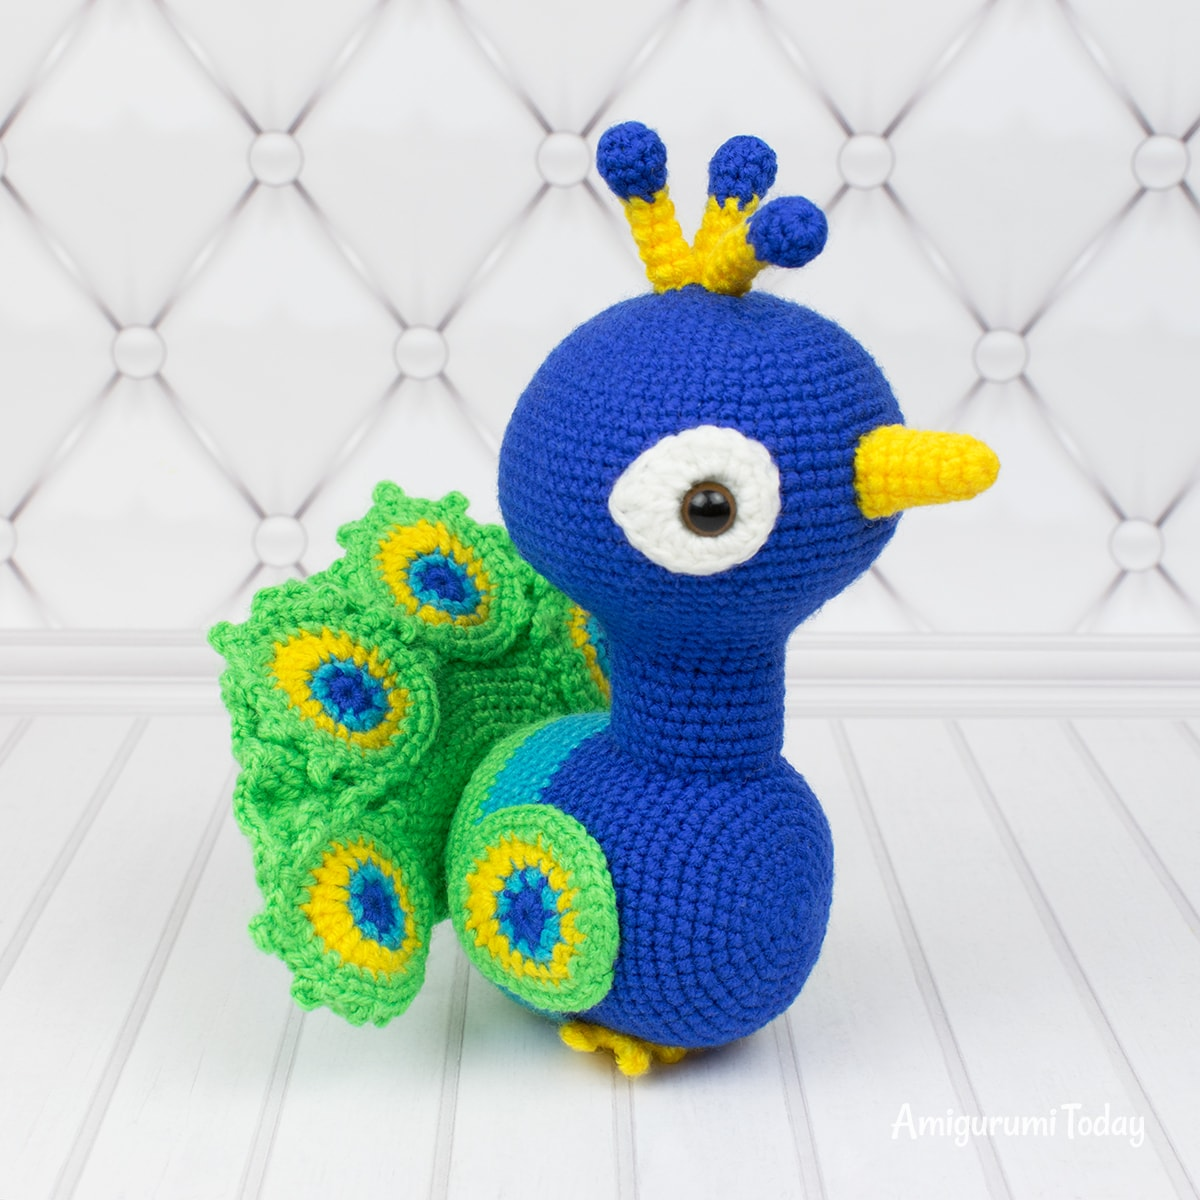 Paco the Peacock - Free crochet pattern by Amigurumi Today